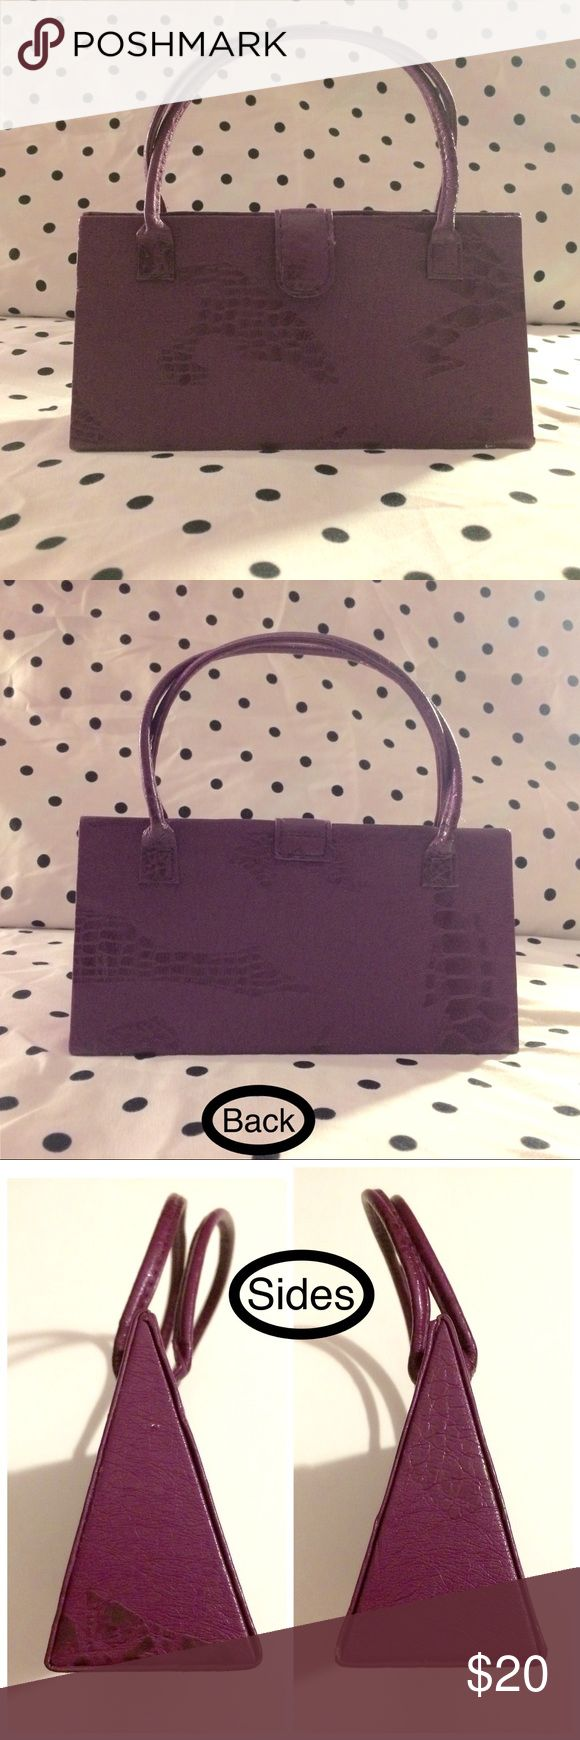 """Purple """"mock croc"""" triangular hand-held mini purse Color: purple. Shape: rectangle (front view); triangle (side view). Crinkle-textured synthetic leather with a hard foundation & intermittent 🐊-skin pattern. ⚠️NO brand indicated anywhere⚠️ Excellent used condition - a couple of *water* stains on the *inside* & some small *nicks* on the *outside*. (See *last* pic for flaws.) 👍 OFFERS WELCOME 👍 Measurements: length - 7 3/8""""; height - 3 5/8"""" (yes, it's TINY, haha 😉); depth - 2""""; handle drop…"""